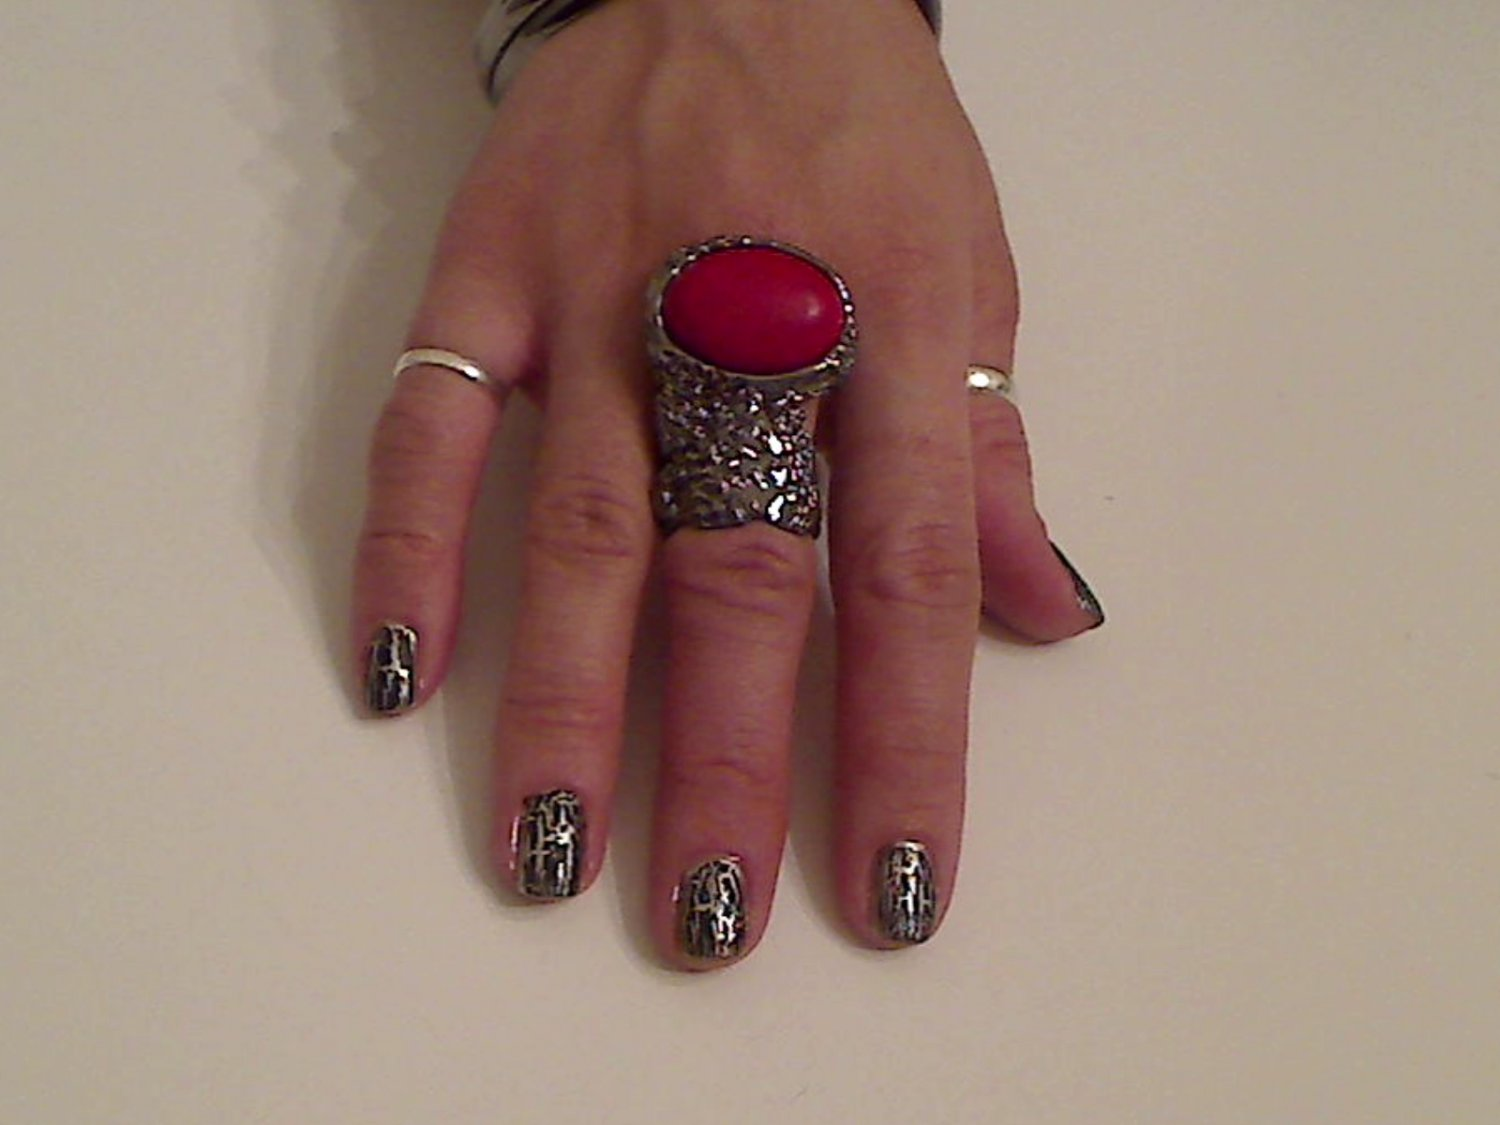 RED ARTY CHUNKY MOON KNUCKLE RING IN GUN METAL SIZES *6*7*8*9